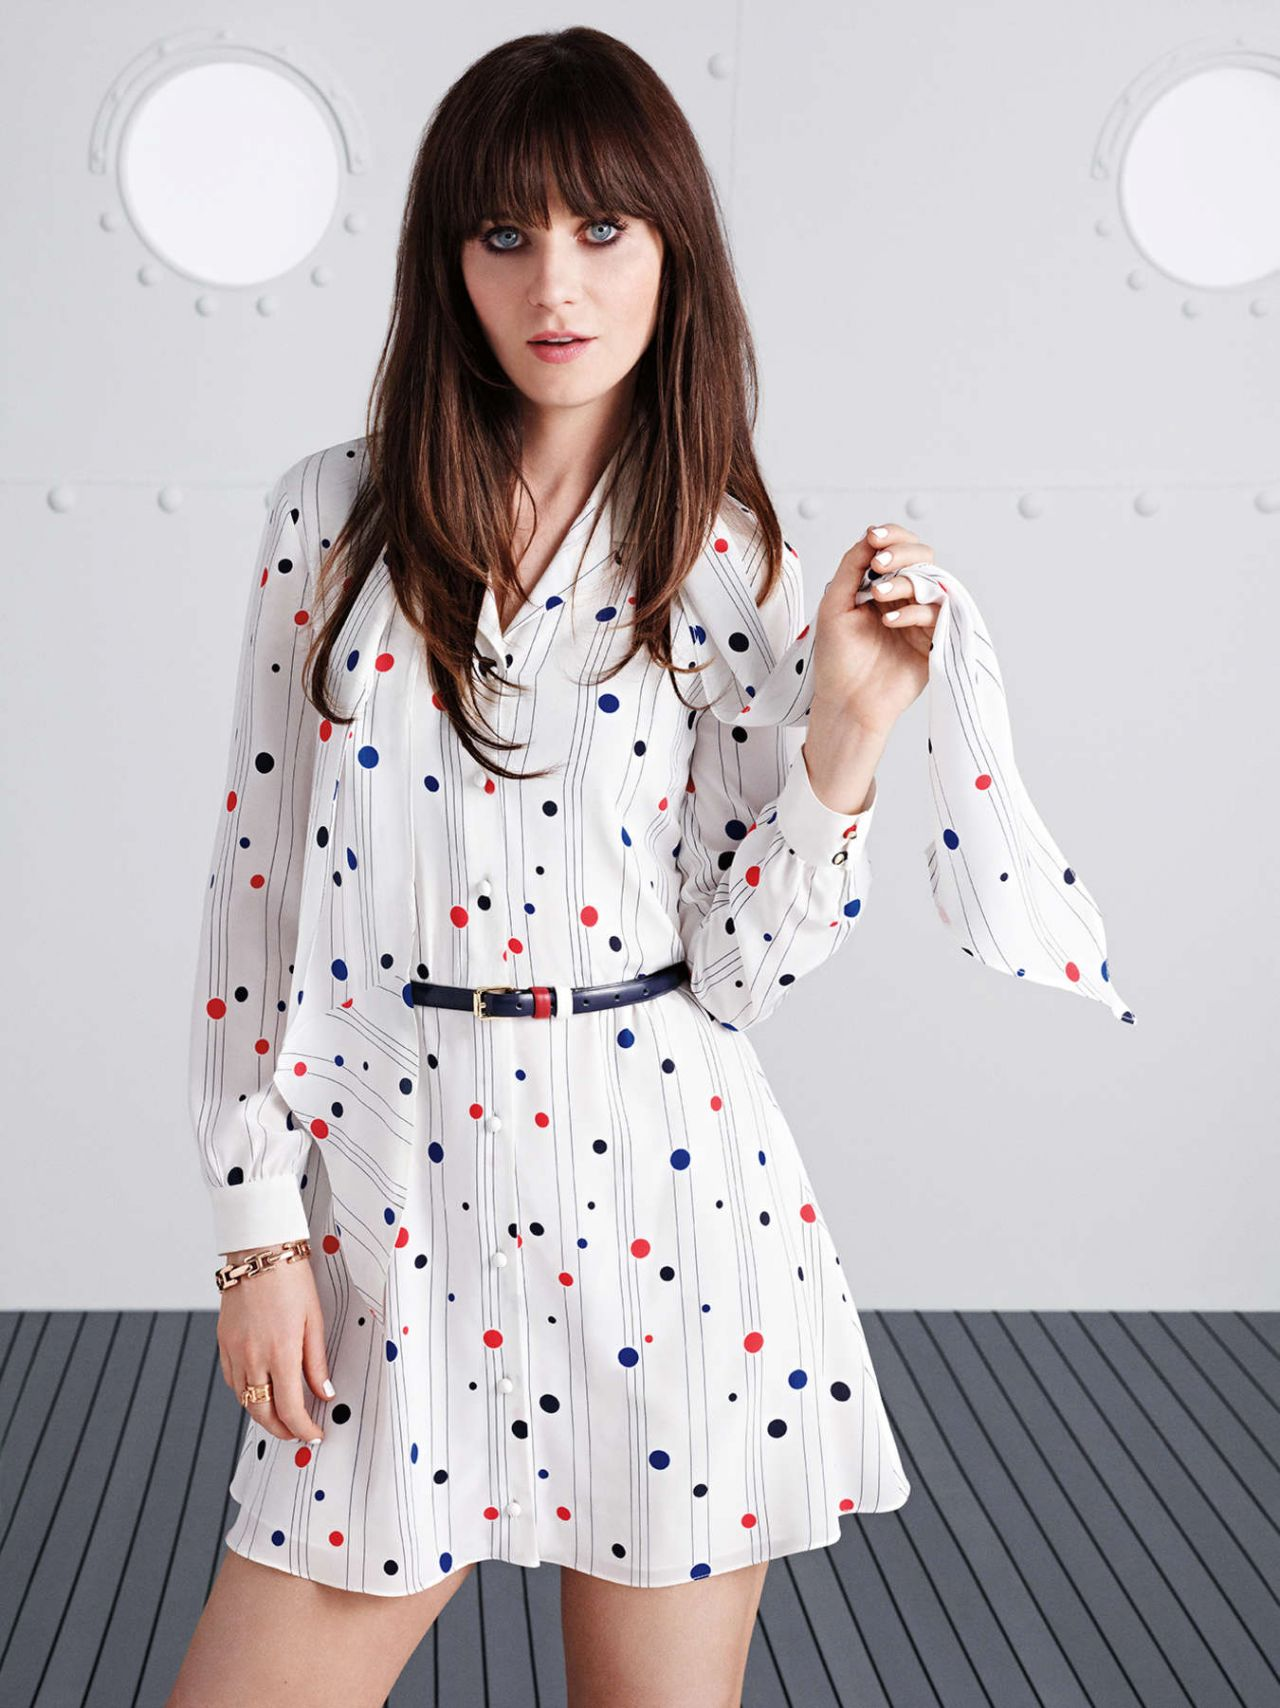 Zooey Deschanel Photoshoot For Tommy Hilfiger 2014